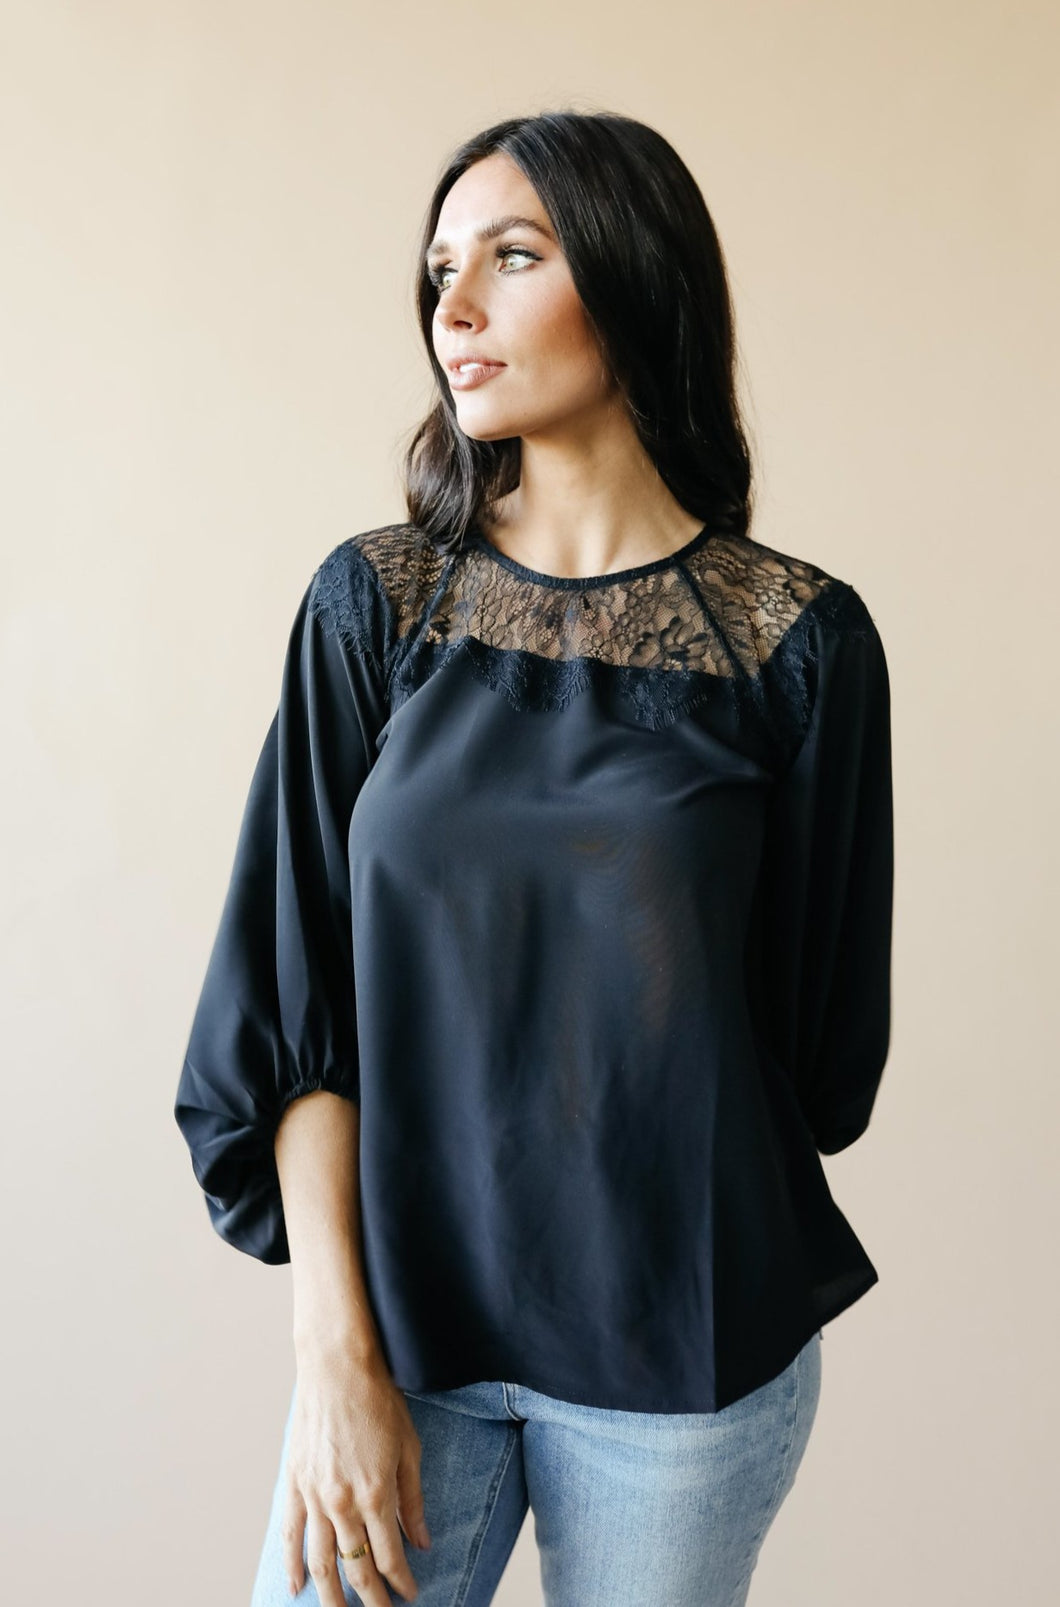 Straight Laced Blouse In Black - Smith & Vena Online Boutique